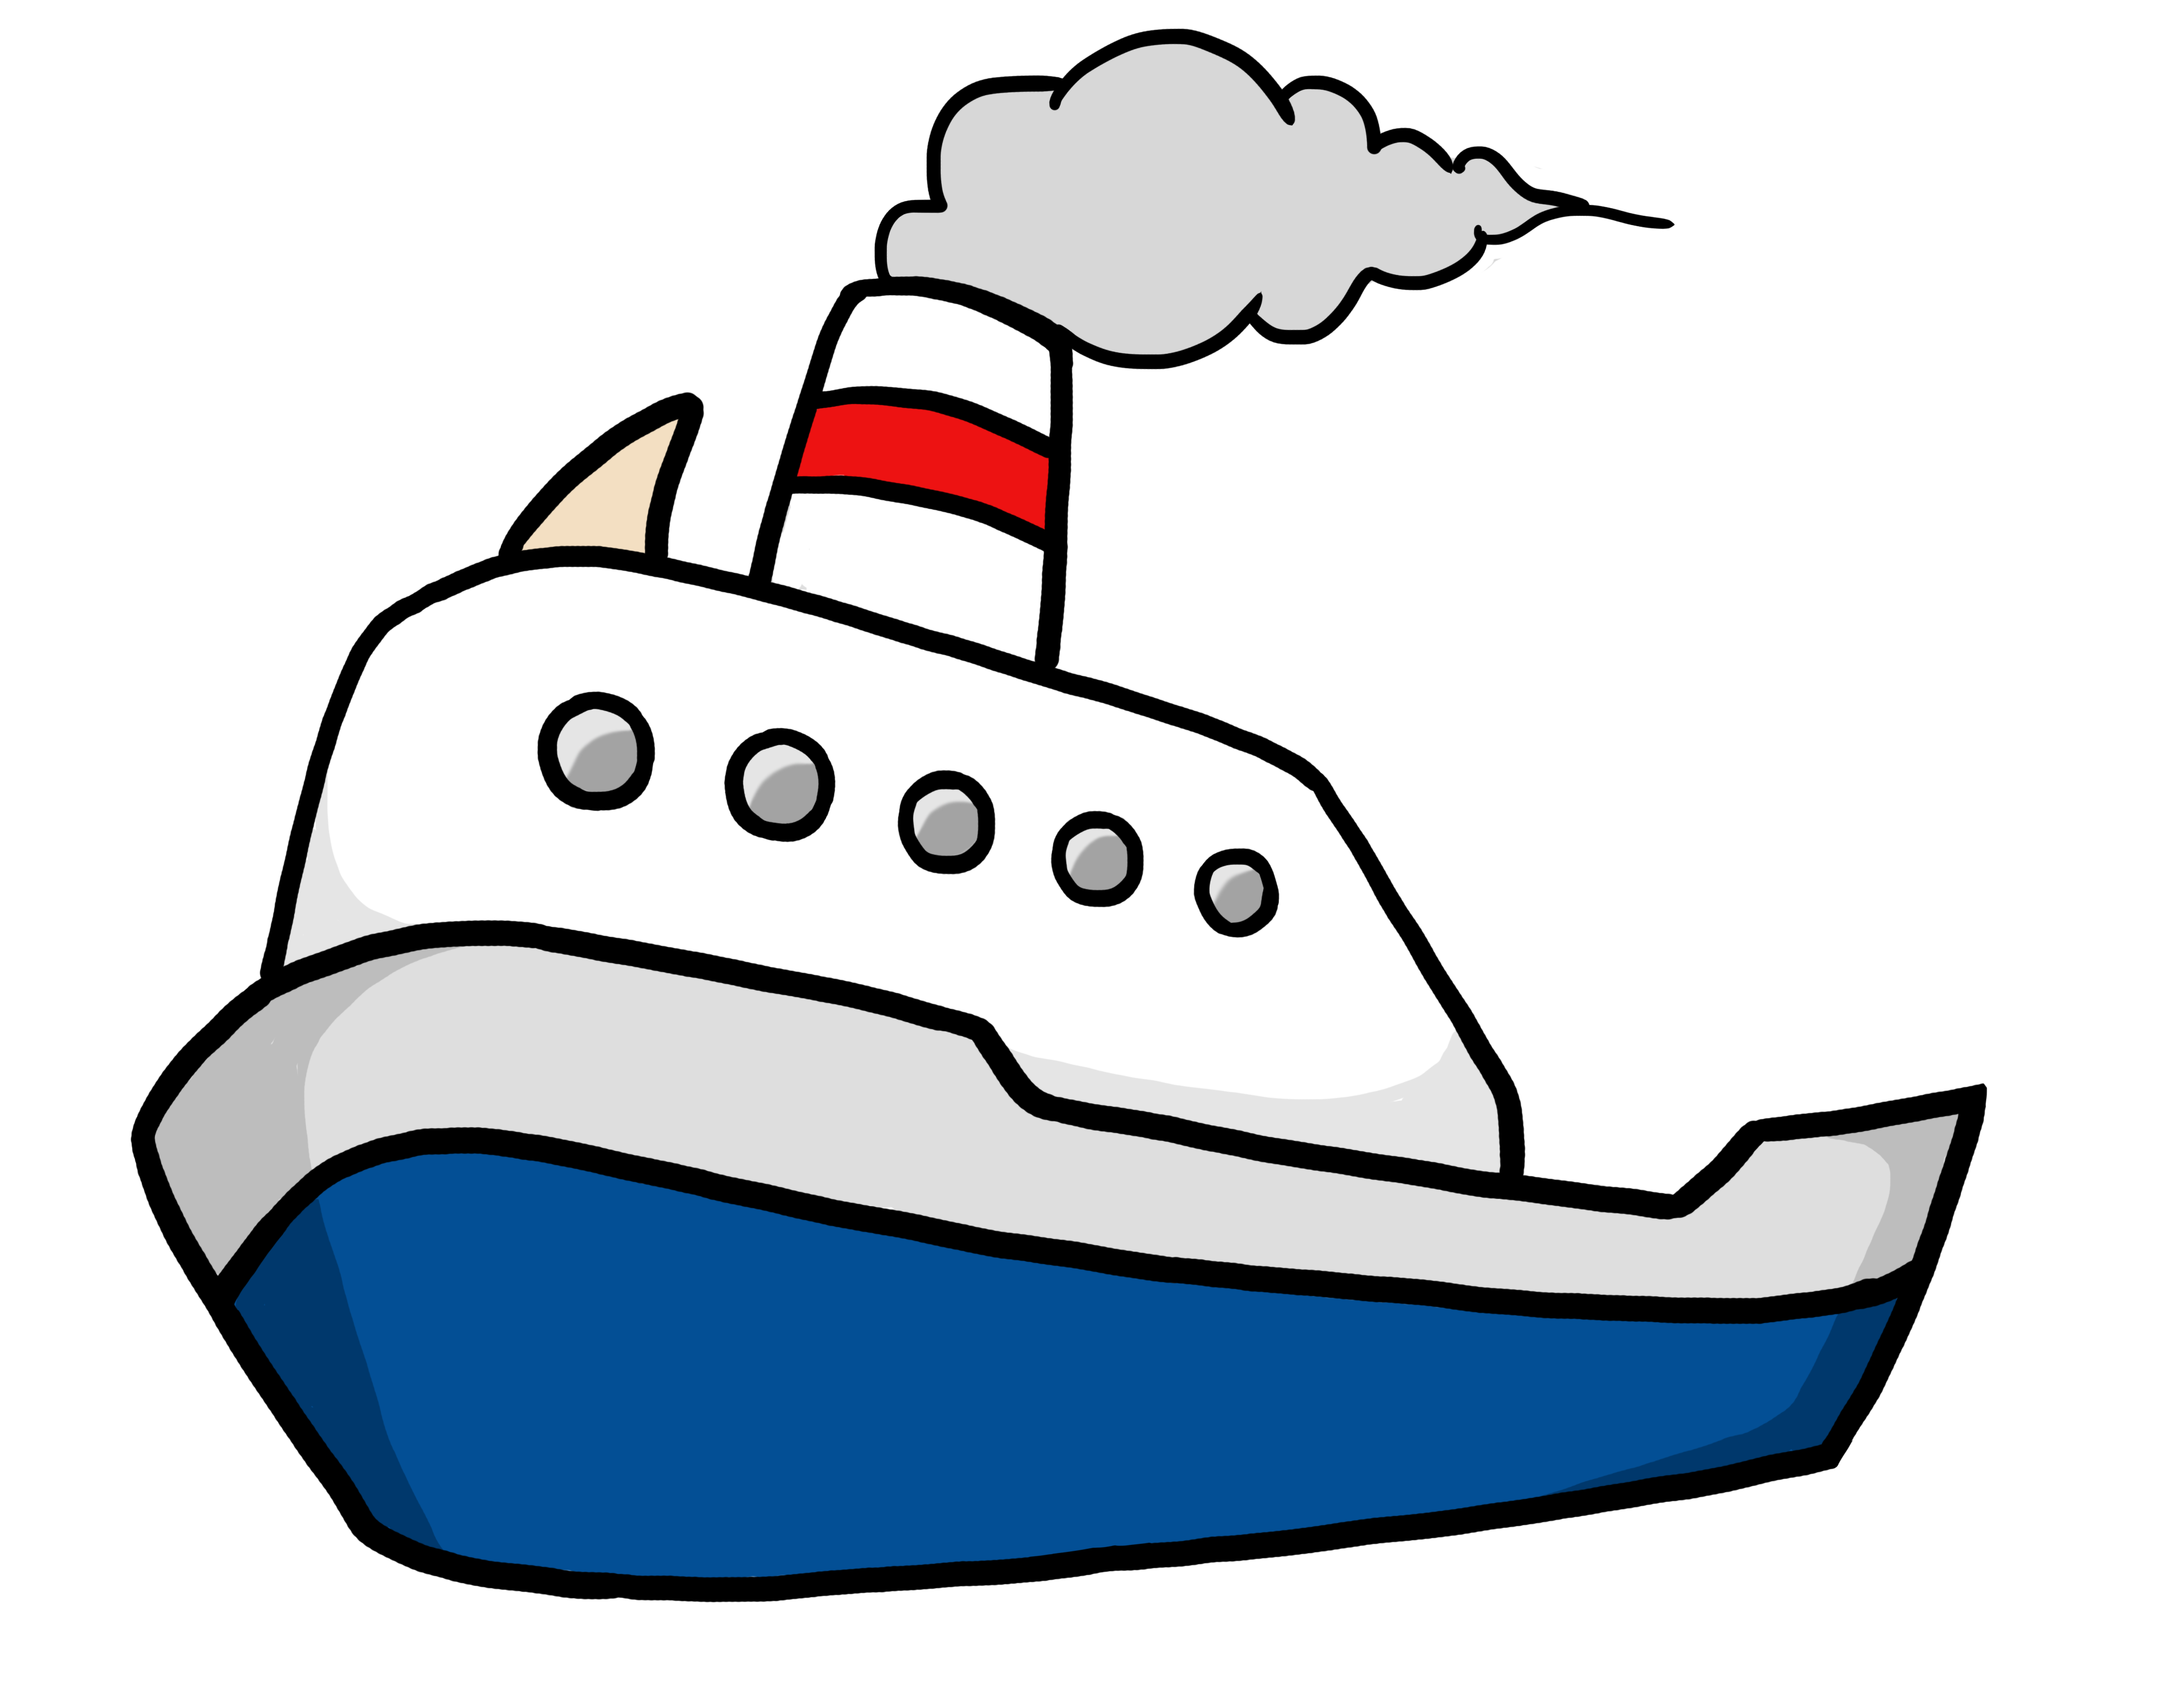 Free Boating Cliparts, Download Free Clip Art, Free Clip Art.